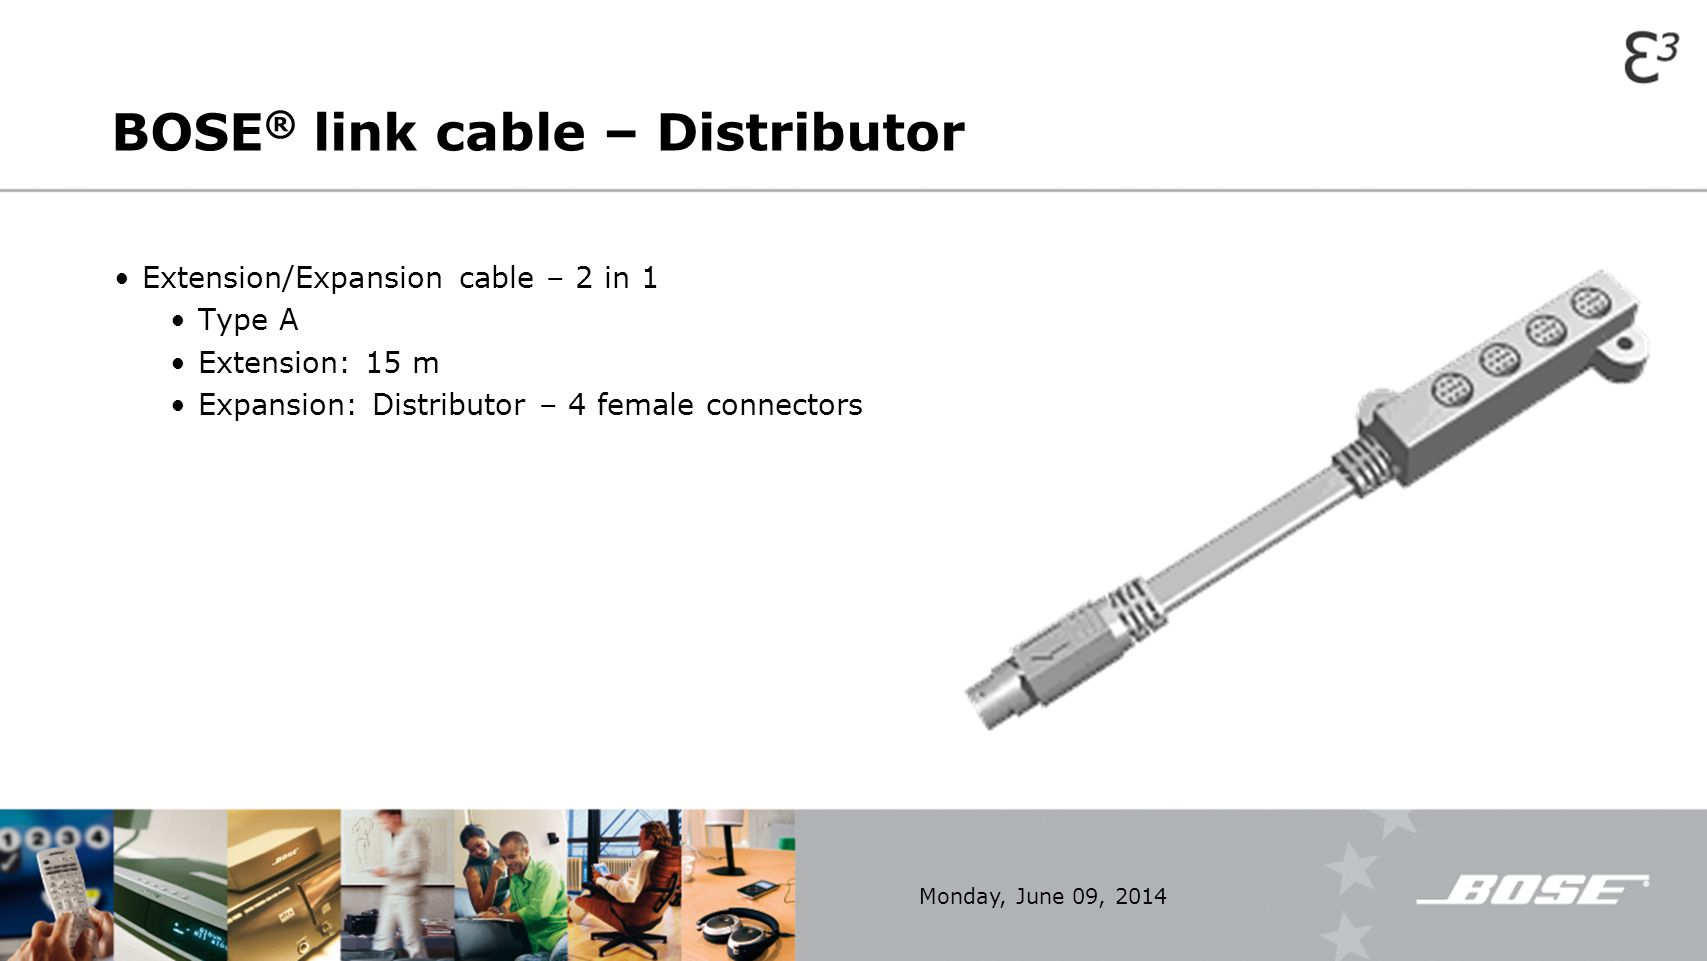 BOSE® link cable – Distributor